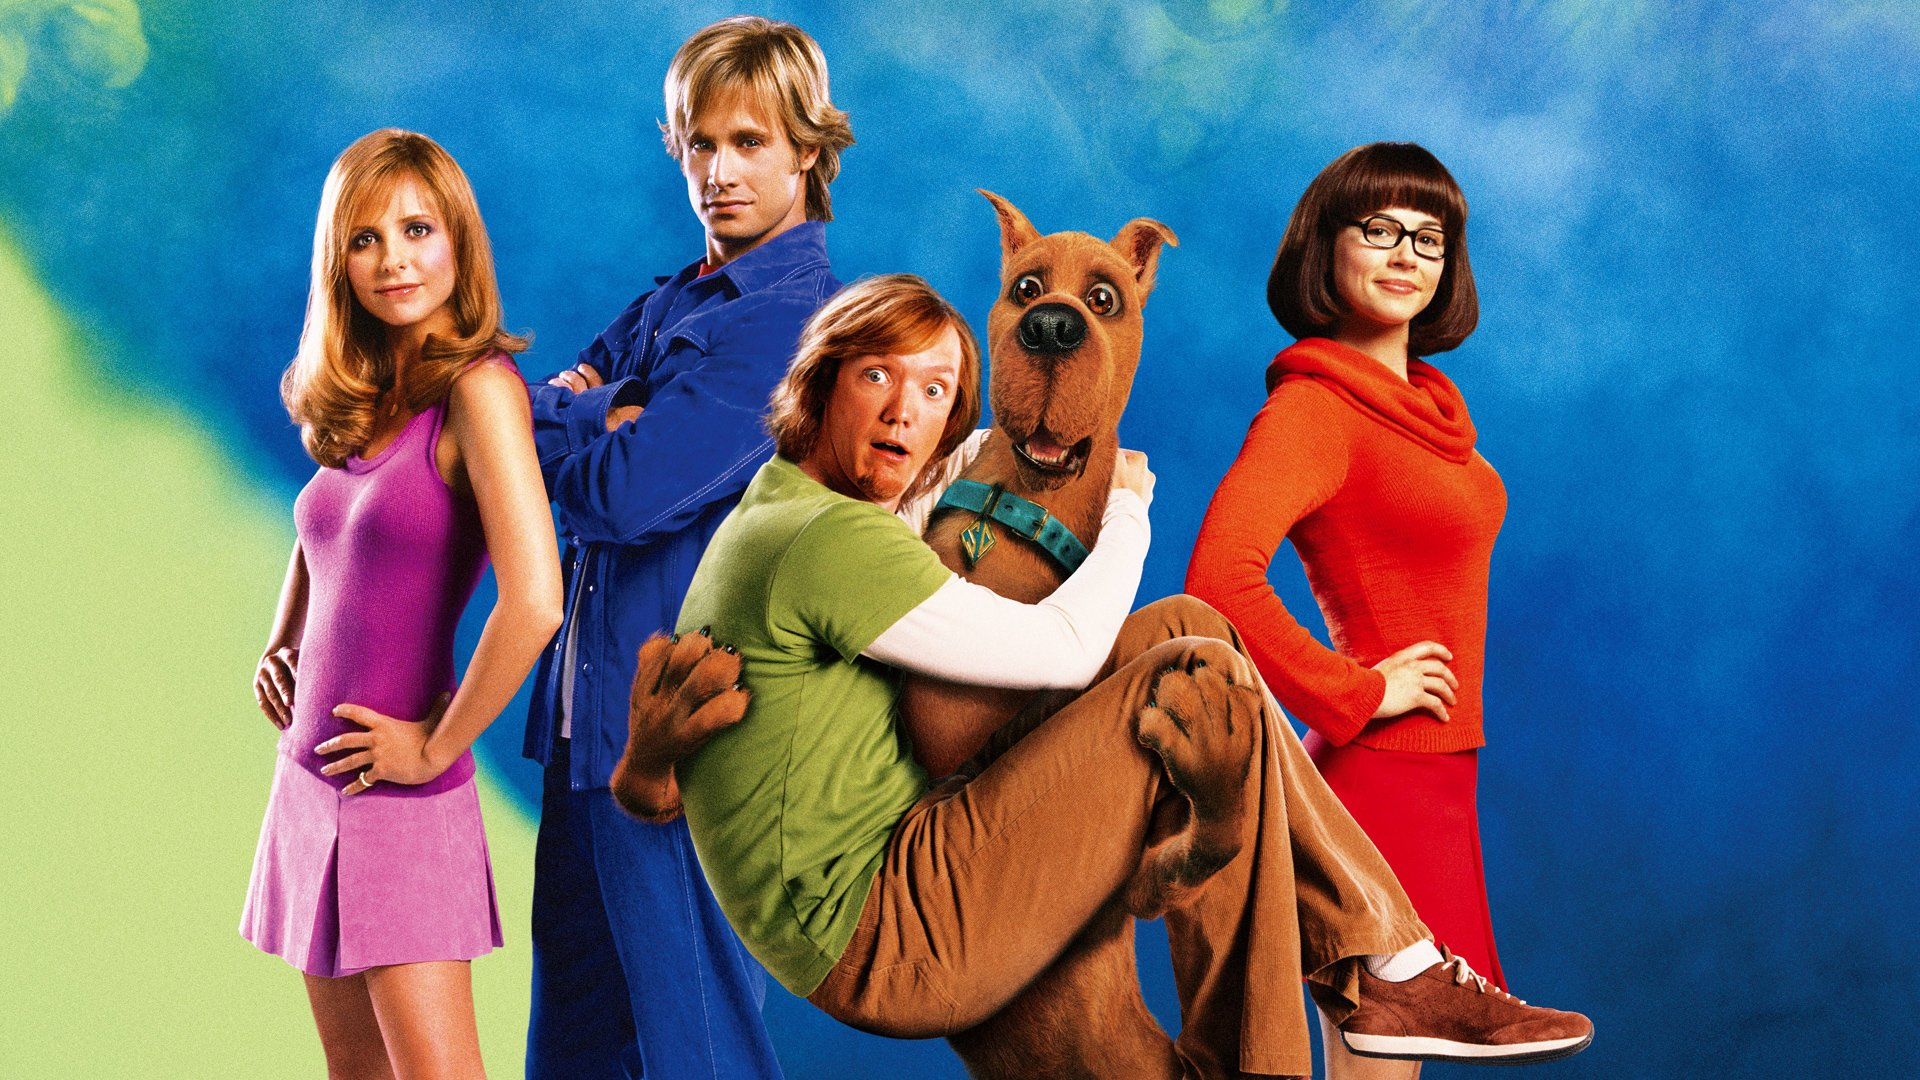 Scooby Doo 2 Monsters Unleashed Hd Wallpaper Achtergrond 1920x1080 Id 1062834 Wallpaper Abyss